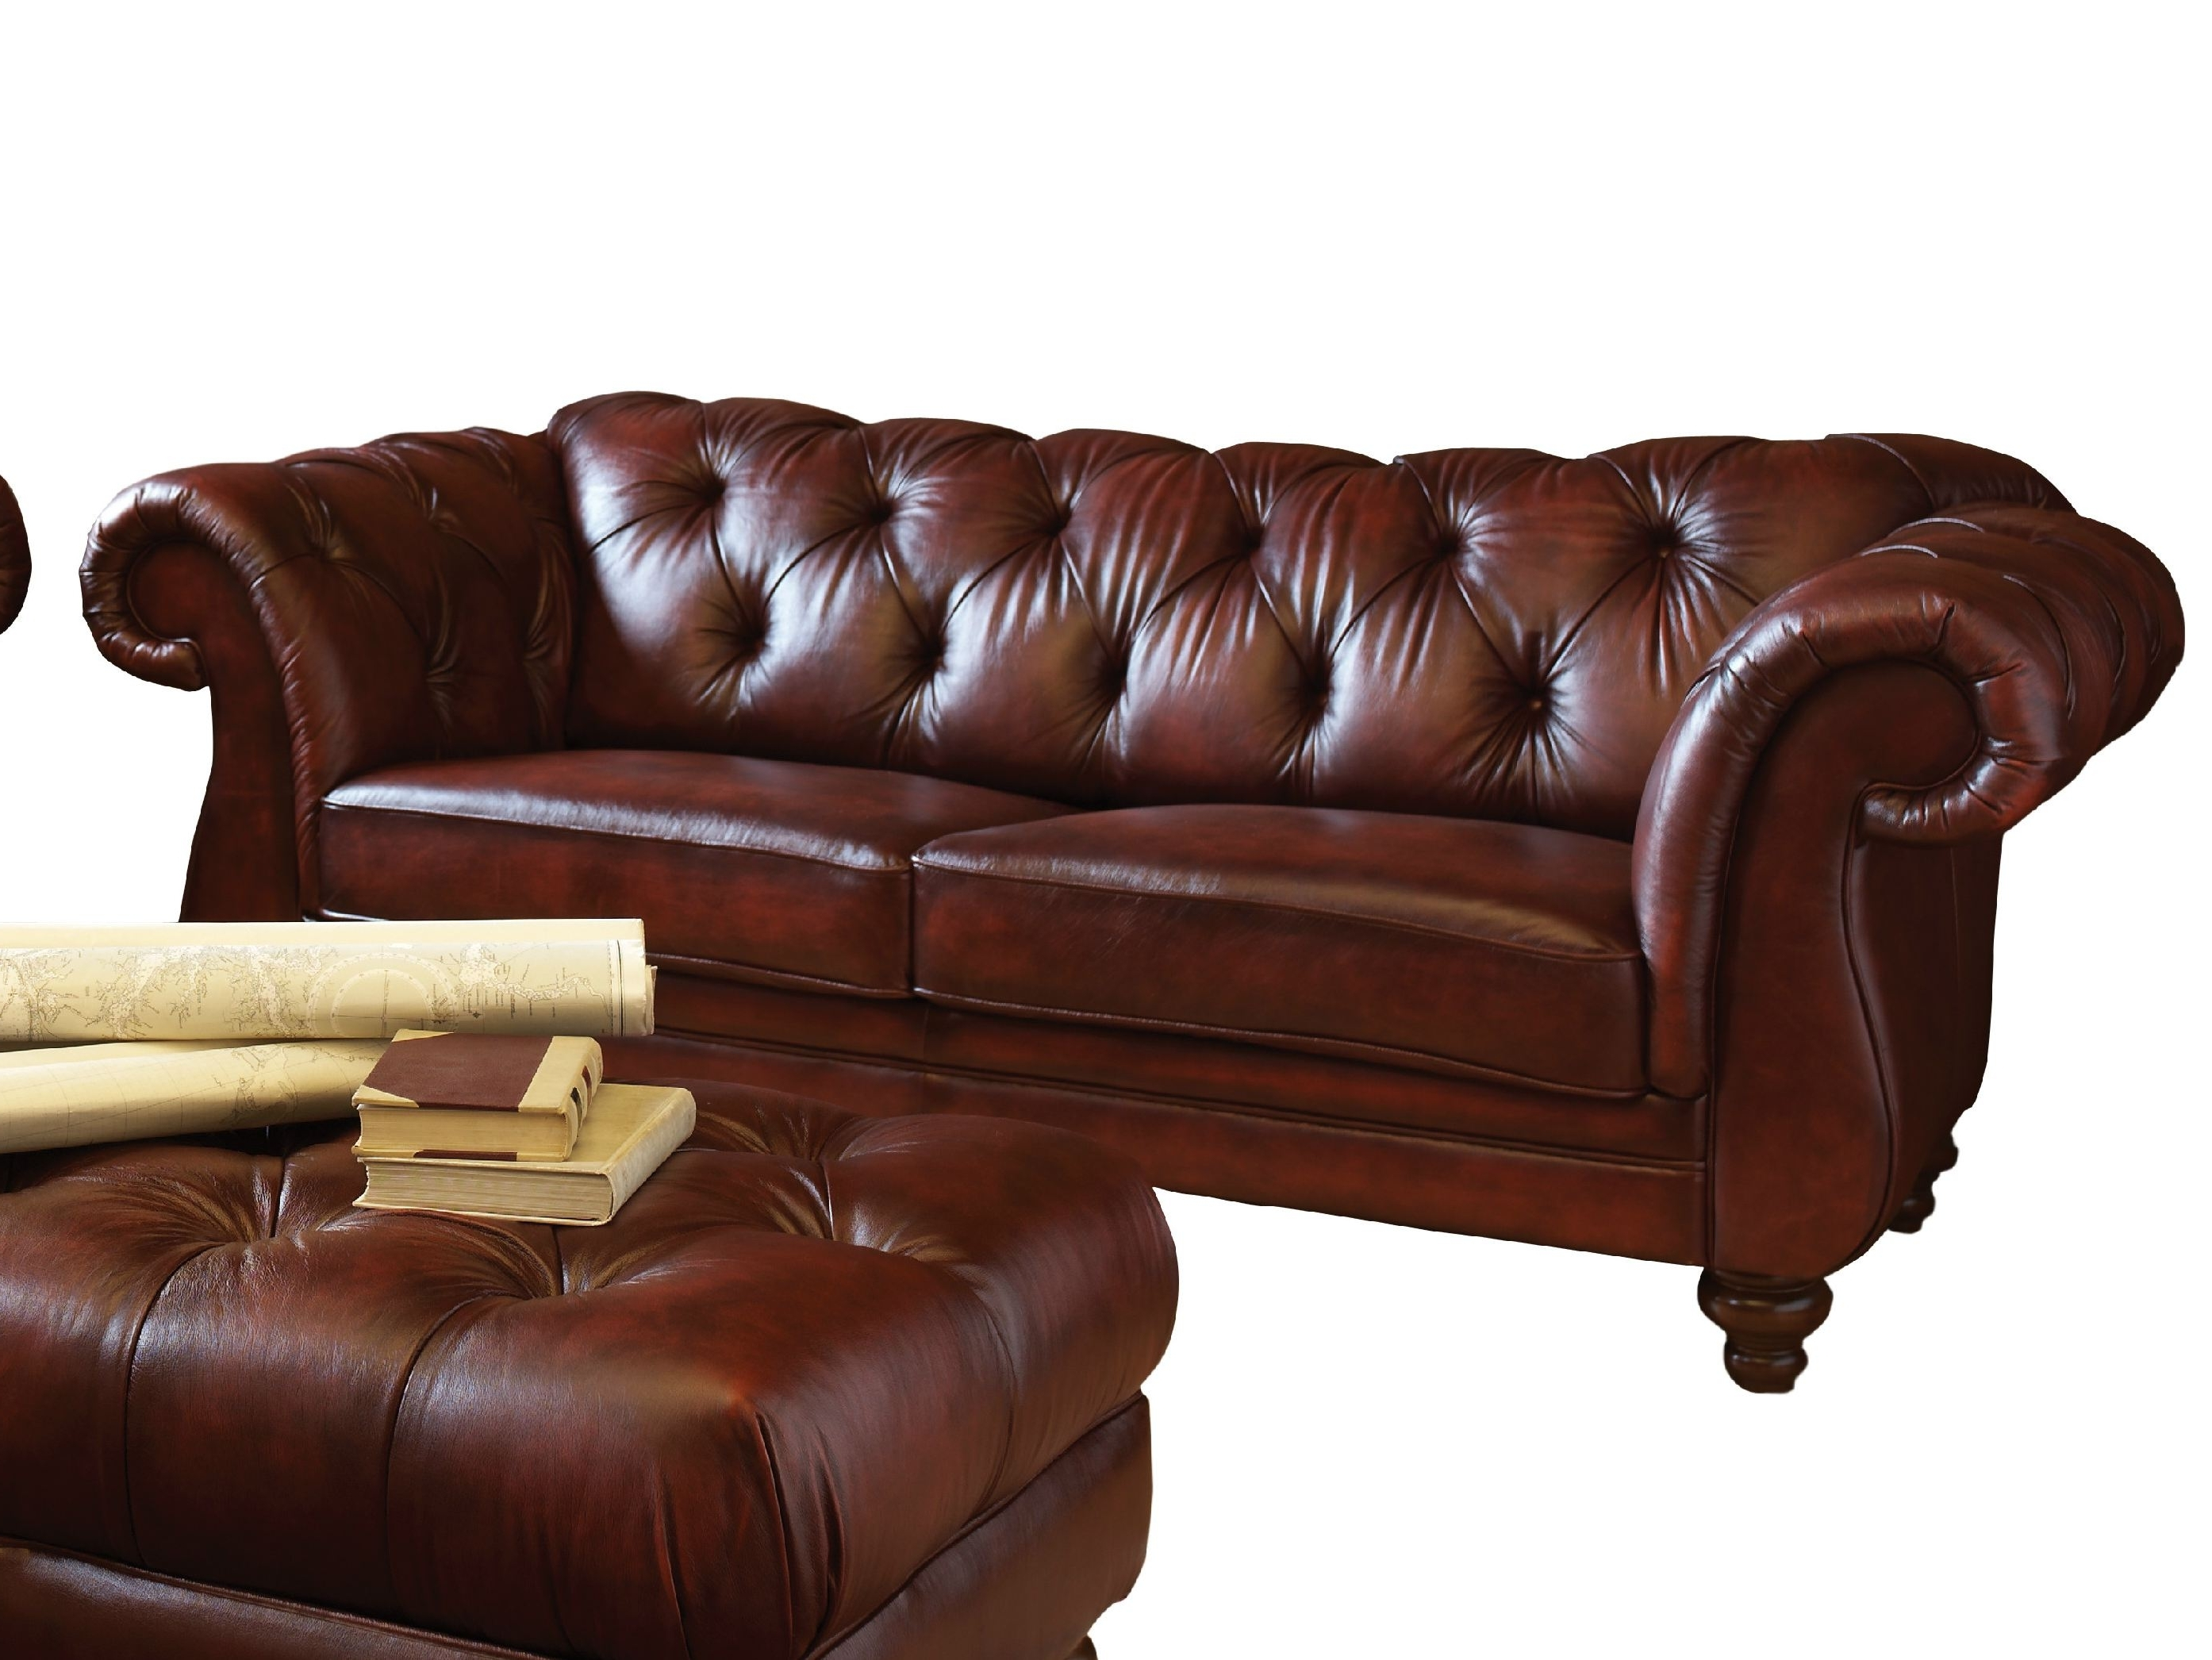 Most Recent Oakville Sectional Sofas Pertaining To Furniture : Ethan Allen Kendall Sofa Reviews Chesterfield Sofa (View 19 of 20)